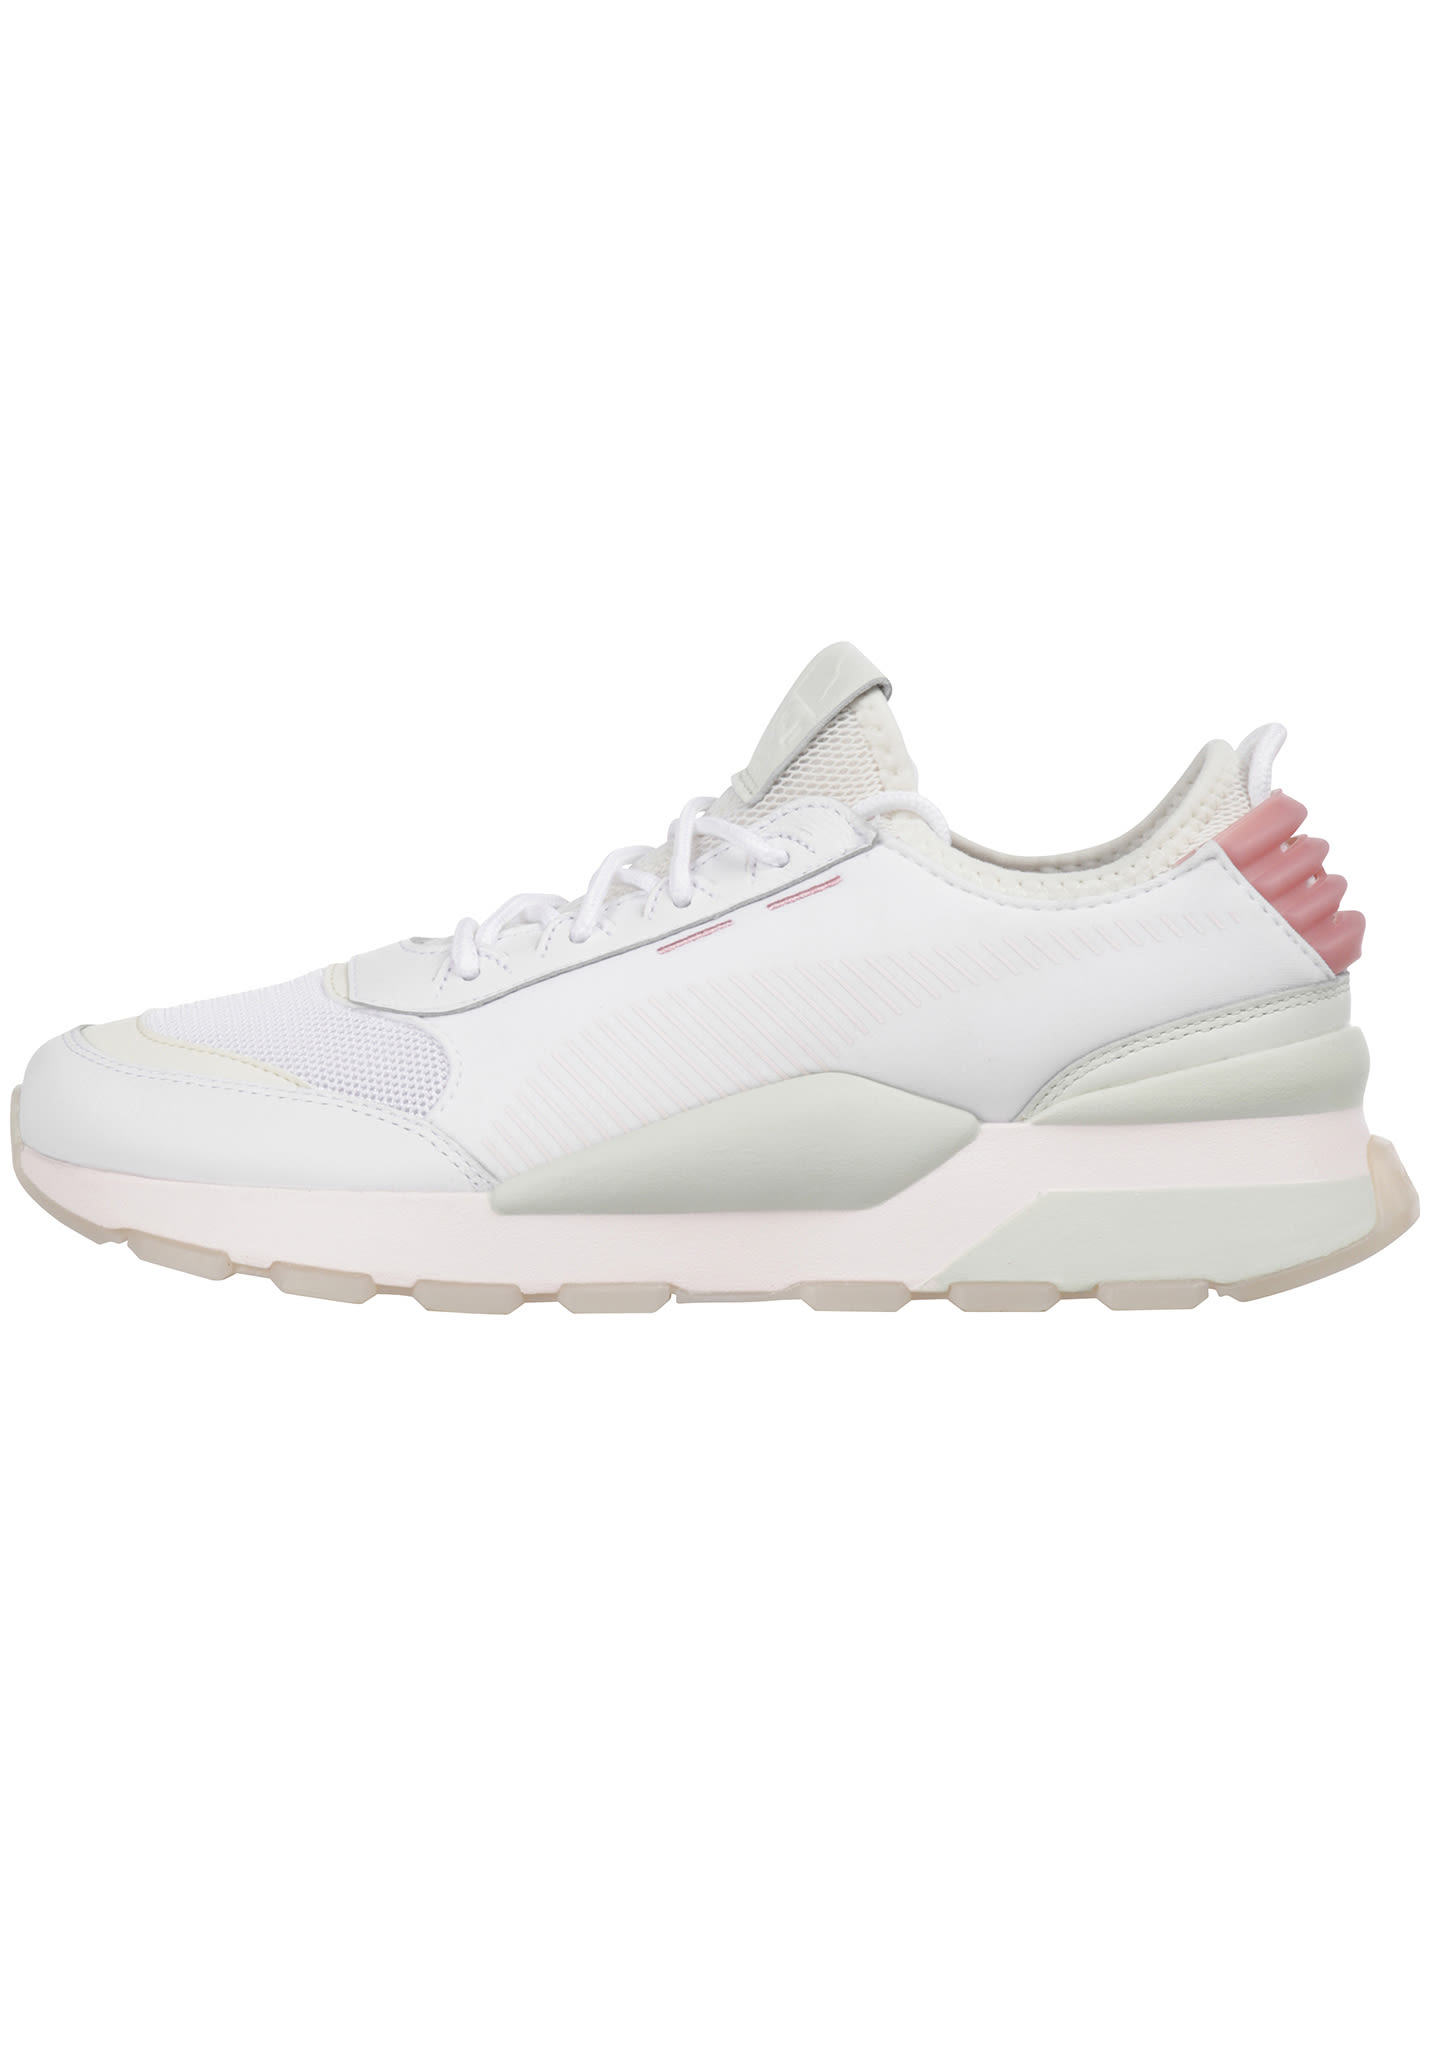 Blanc Tracks Baskets Rs 0 Puma 2YE9IeWDH